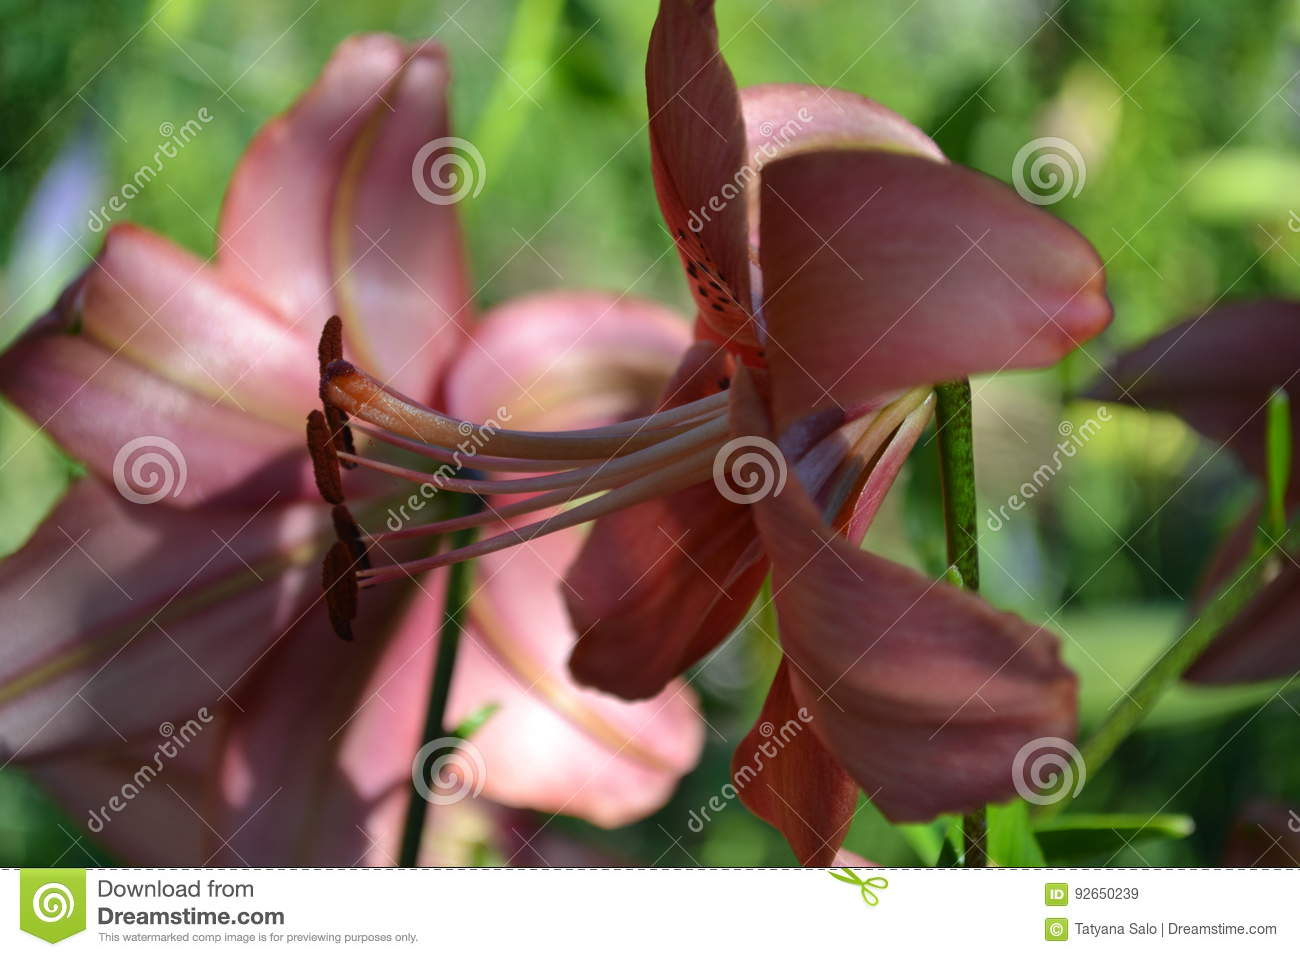 Lily flower stock image image of flower plant yellow 92650239 lily flower izmirmasajfo